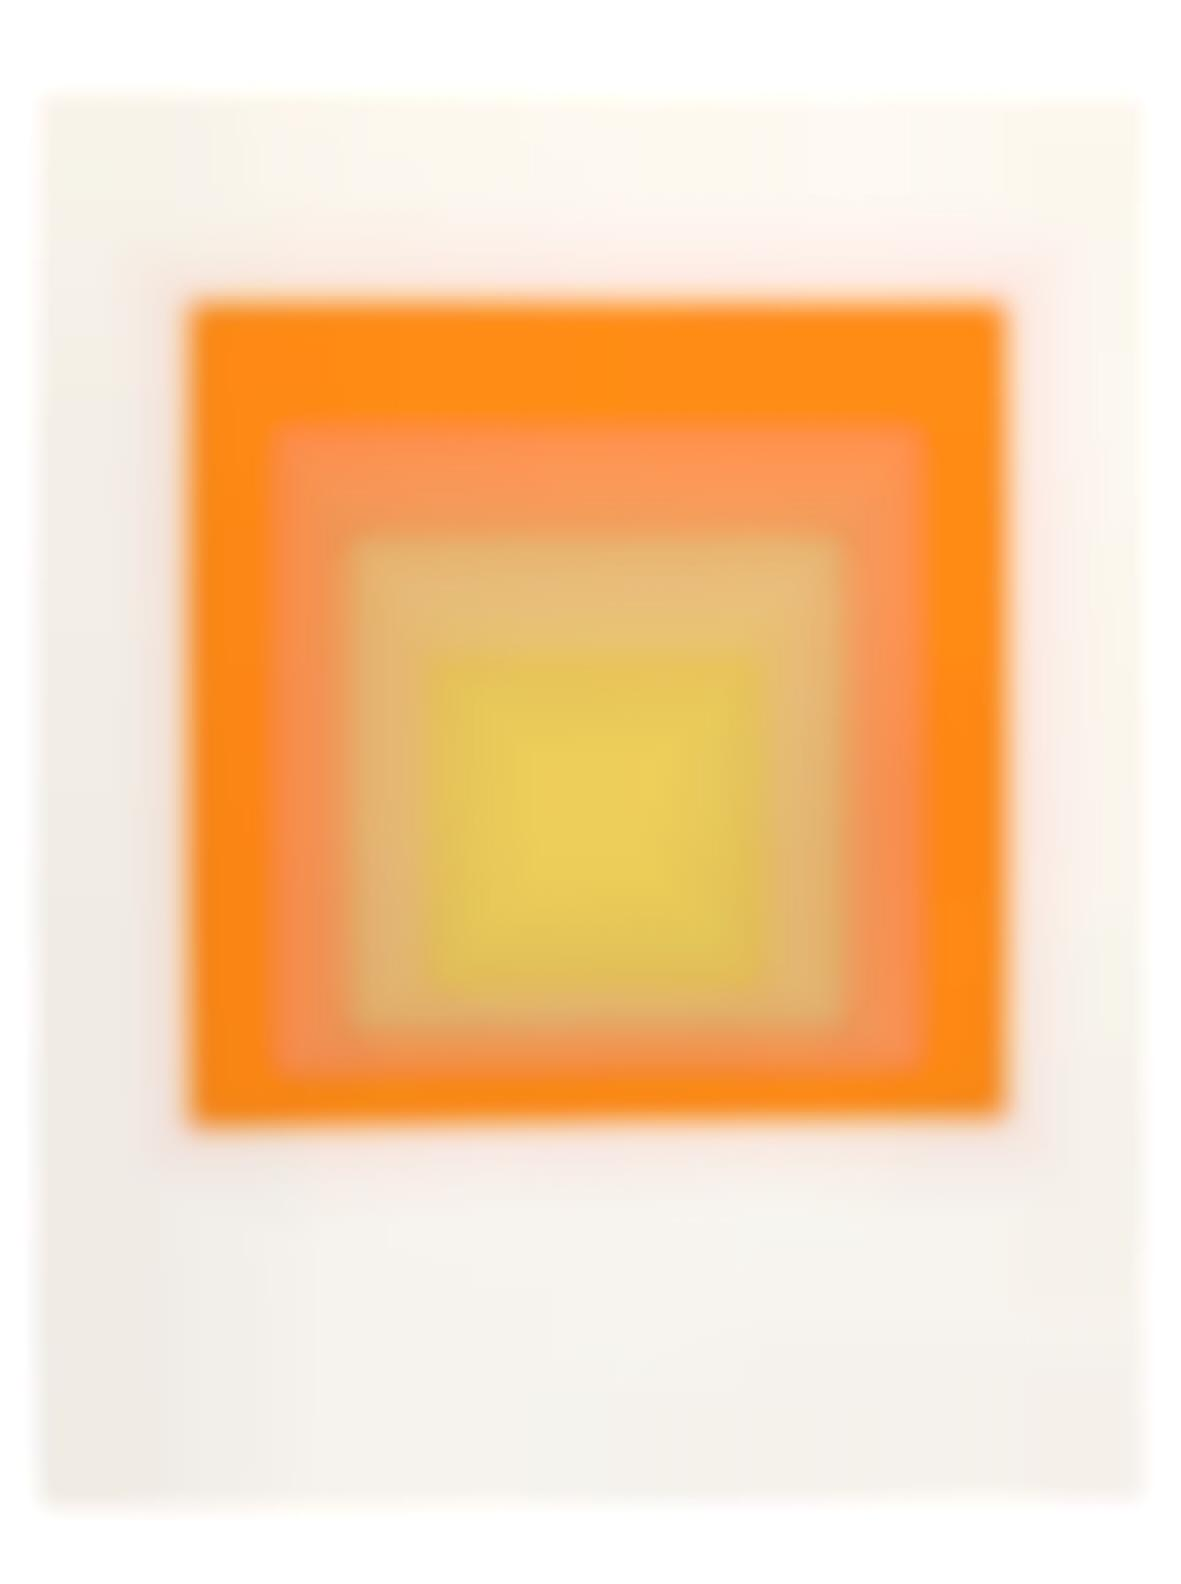 Josef Albers-Homage To The Square-1964